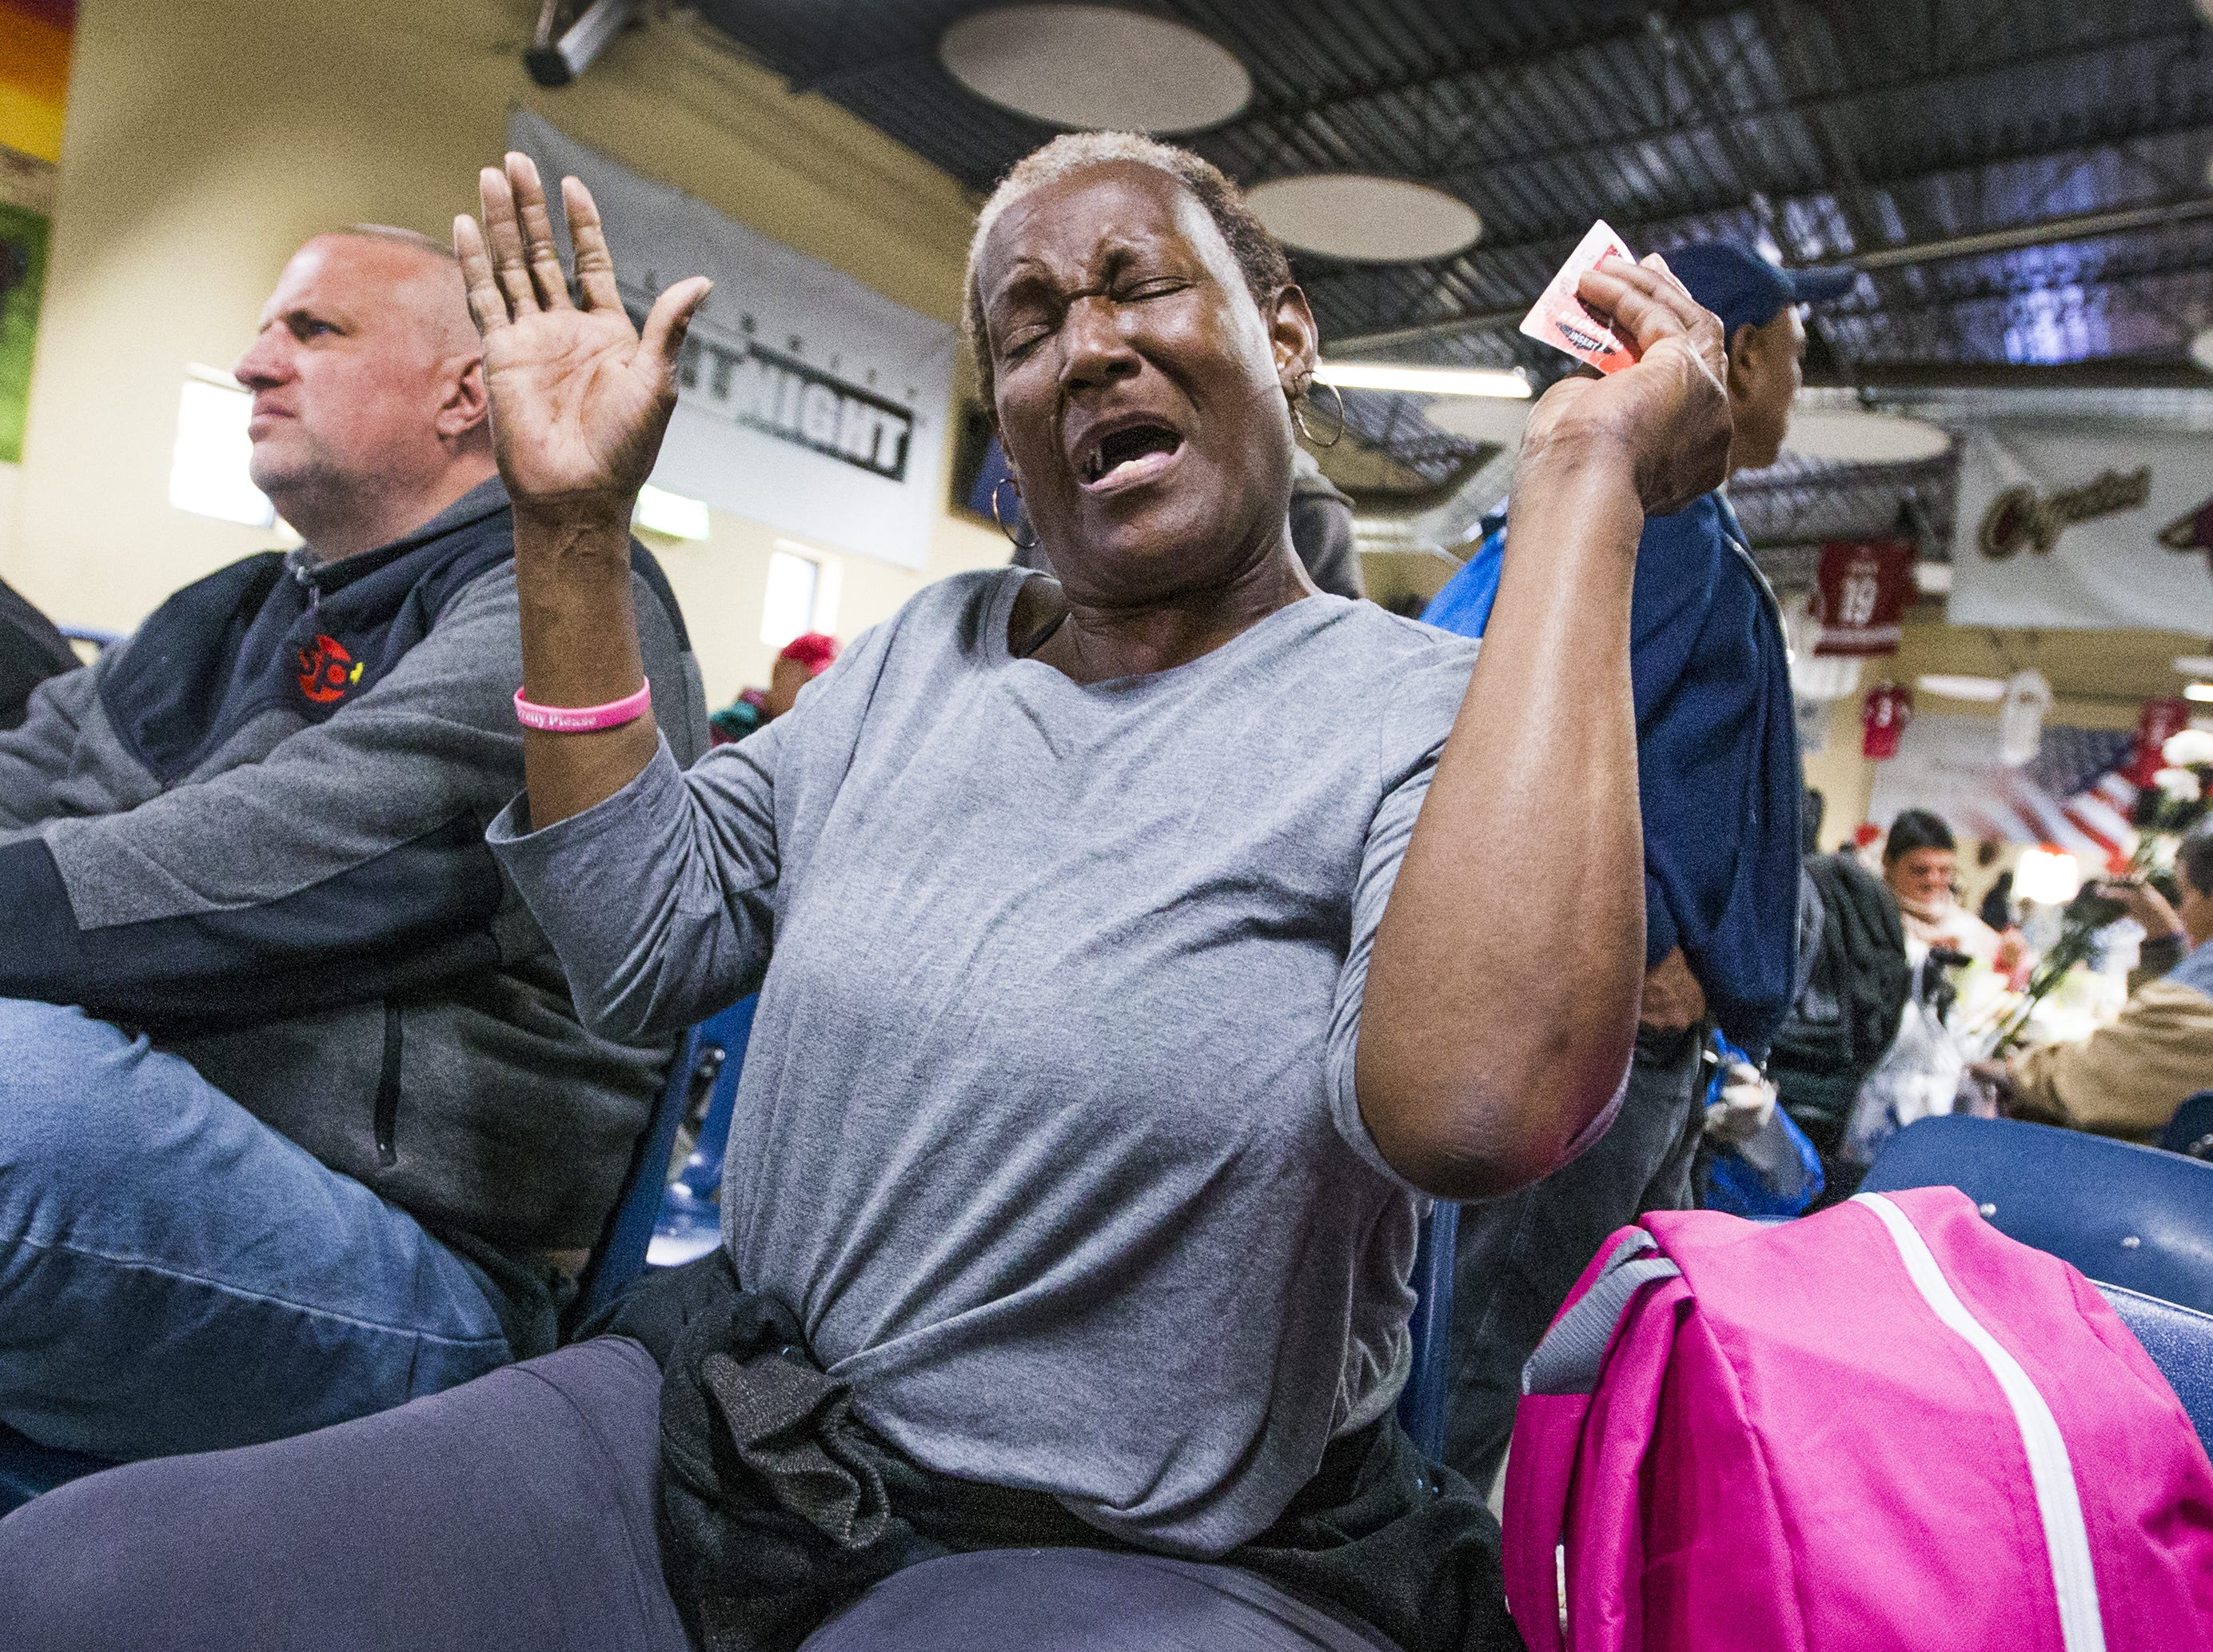 Regina Brown dances in her chair as she listens to music at the Thanksgiving Day meal served by volunteers with the St. Vincent de Paul Society. Hundreds enjoyed turkey, mashed potatoes and pumpkin pie at the Human Services Campus Dining Room in Phoenix, Thursday, November 22, 2018.